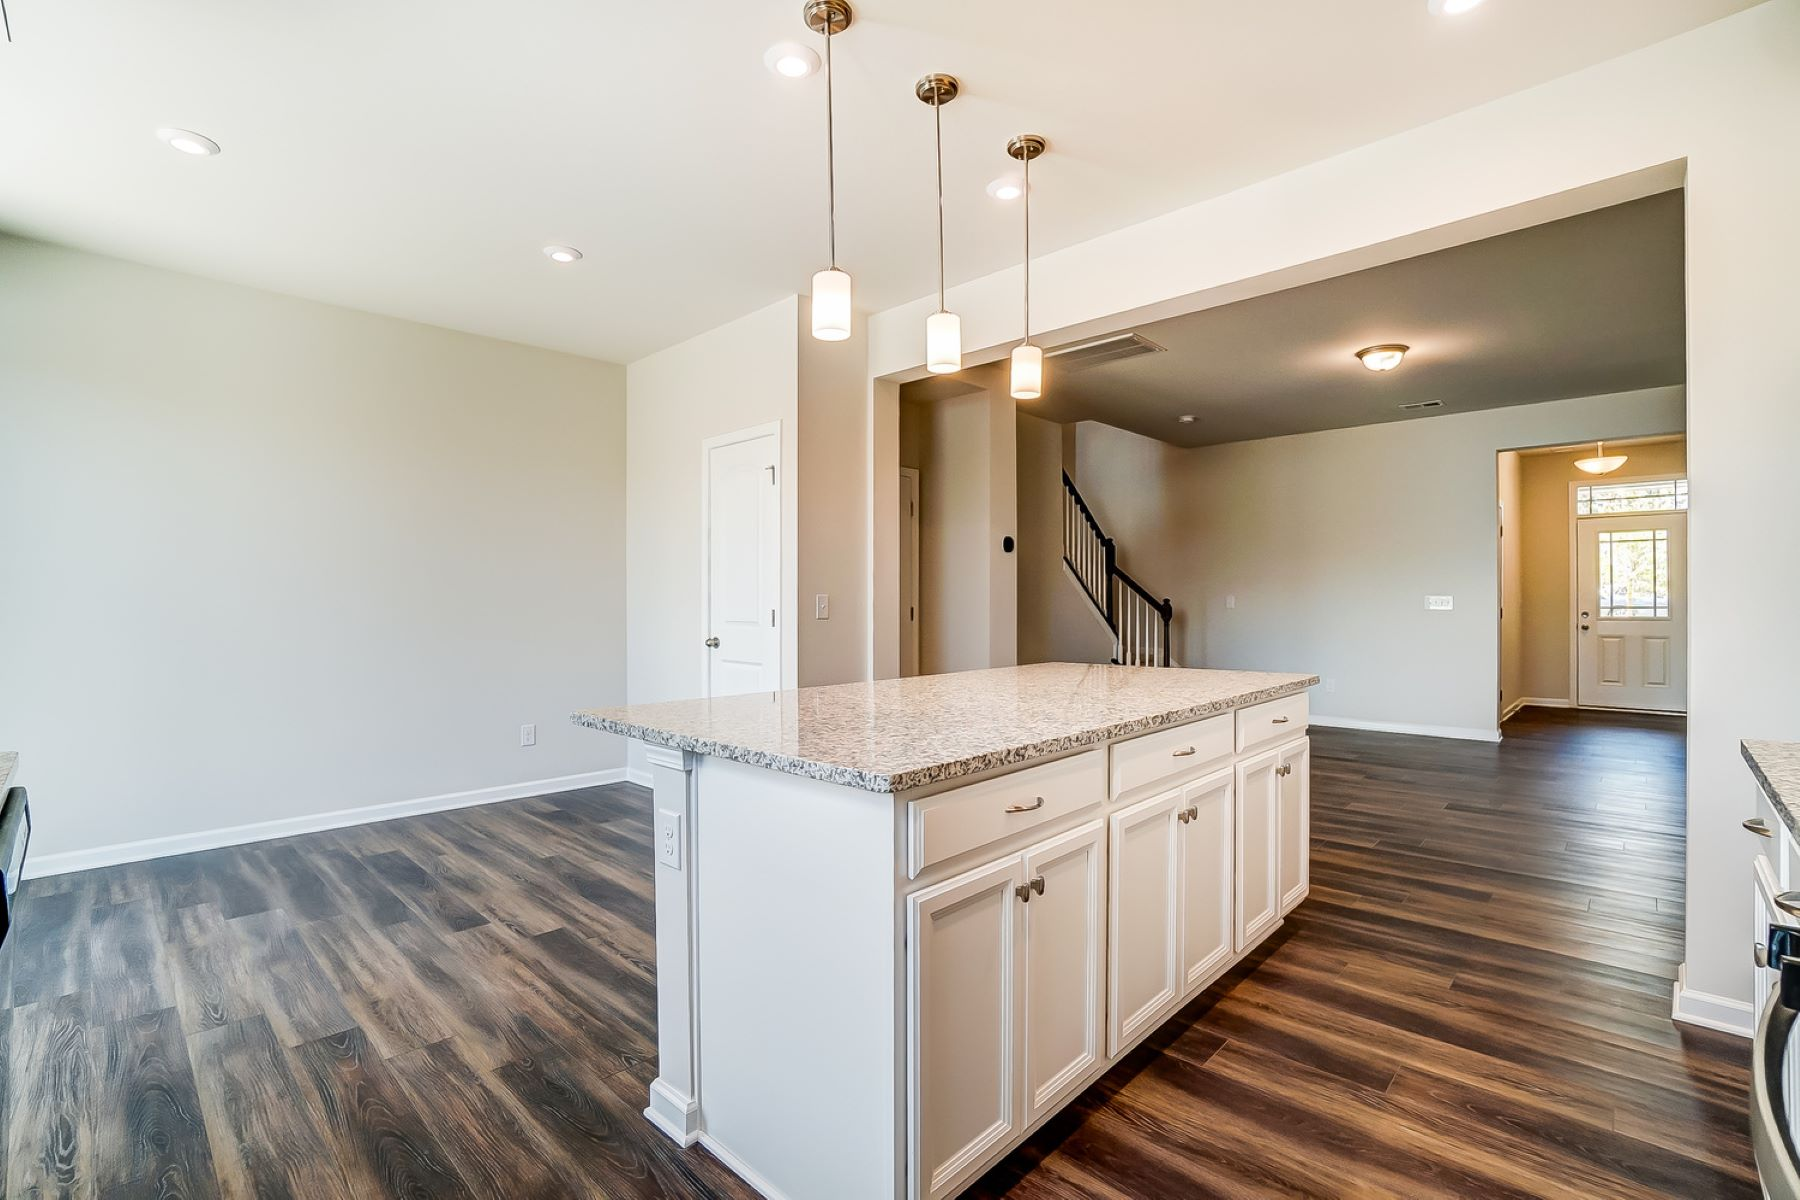 Brooke Plan Kitchen at Galloway Park in Charlotte North Carolina by Mattamy Homes